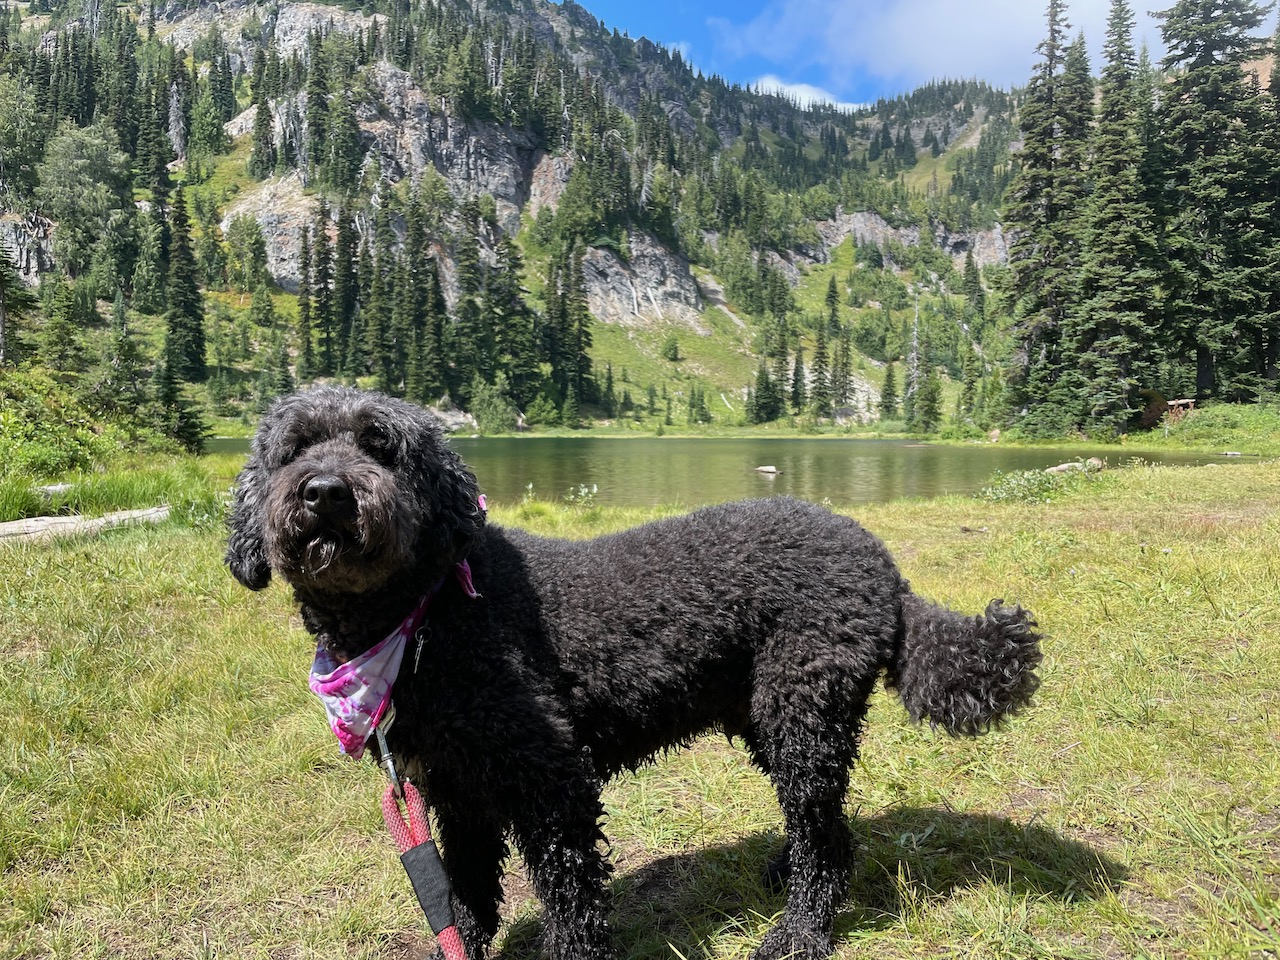 Our dog Archie at Sheep Lake